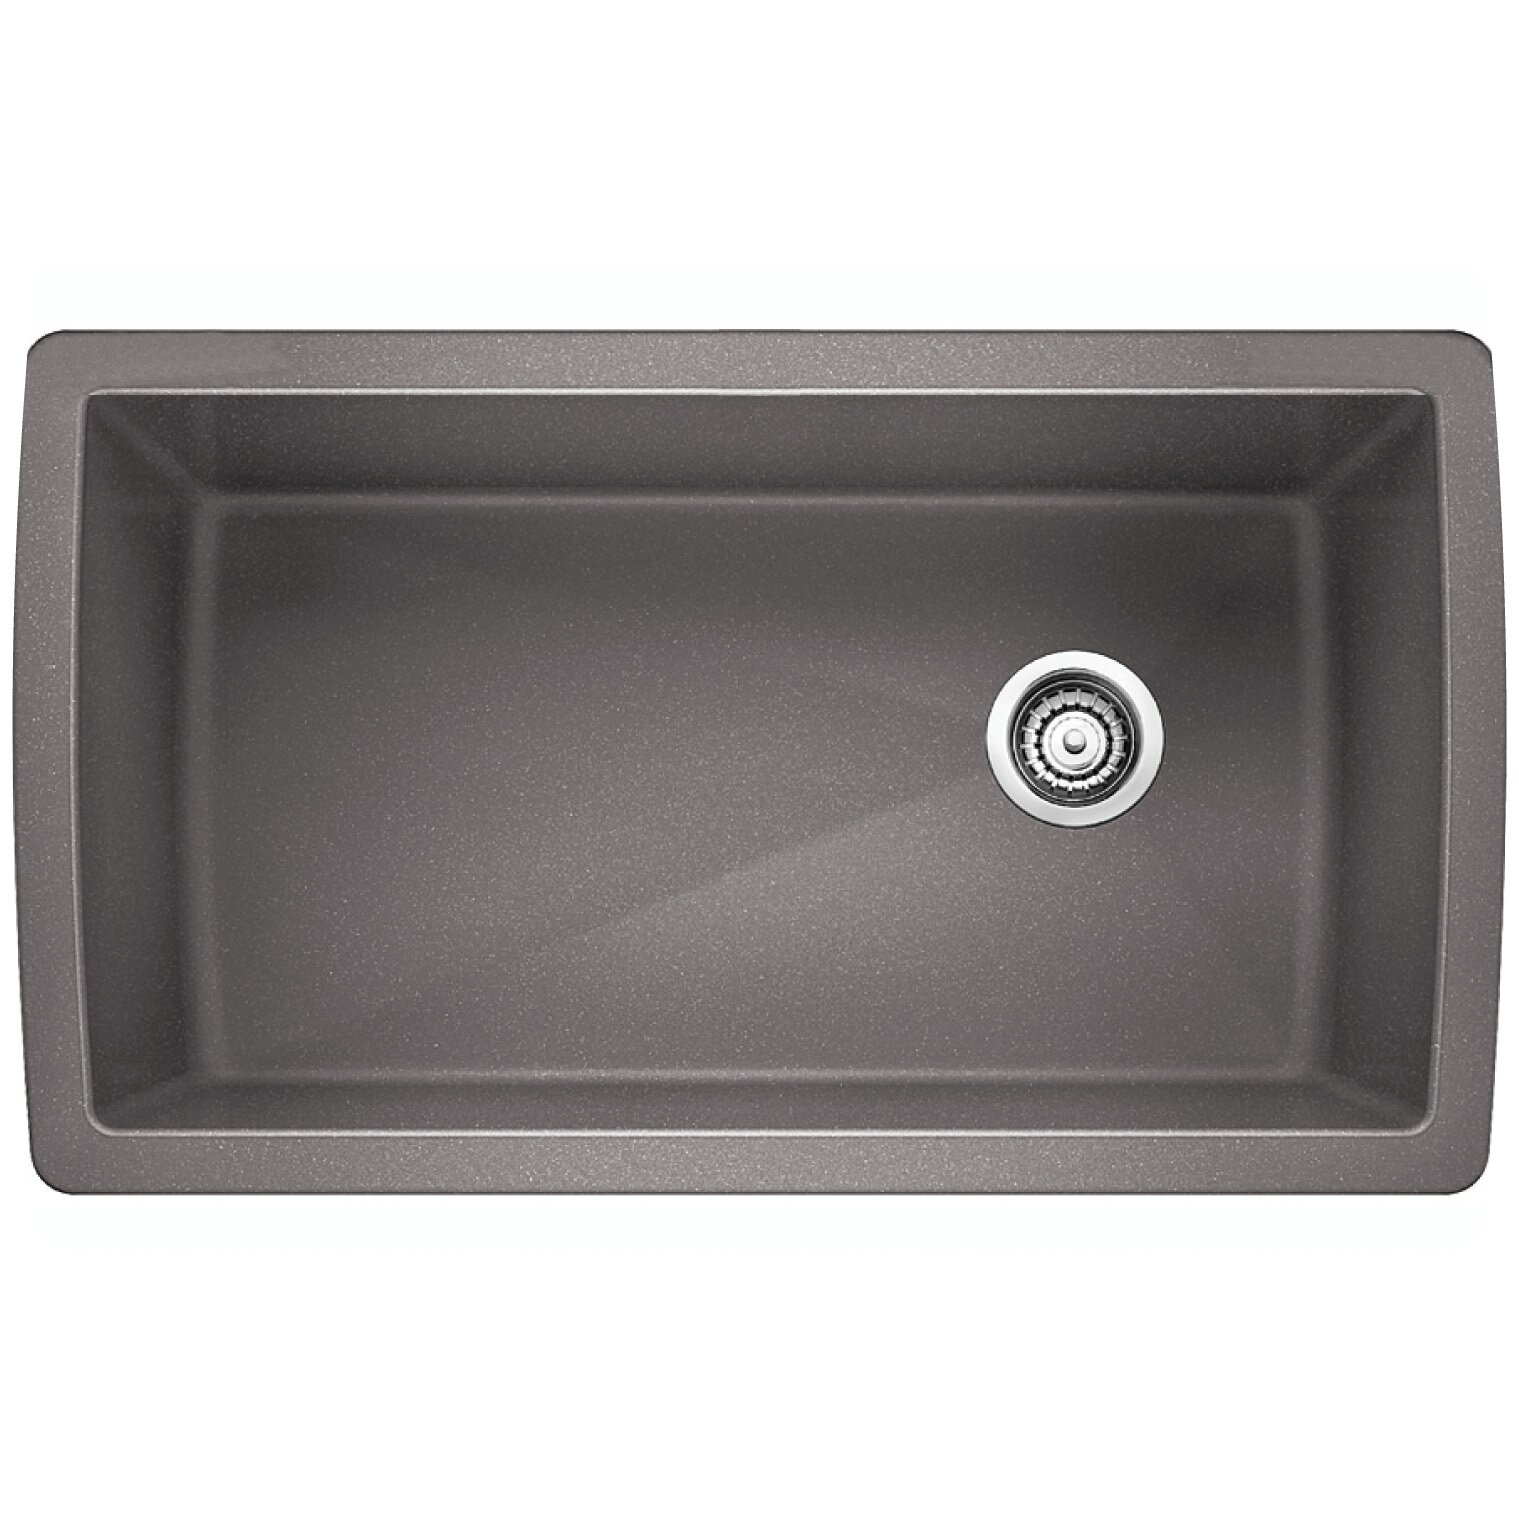 Undermount Granite Composite Kitchen Sinks Granite Composite Kitchen Sinks Youll Love Wayfair